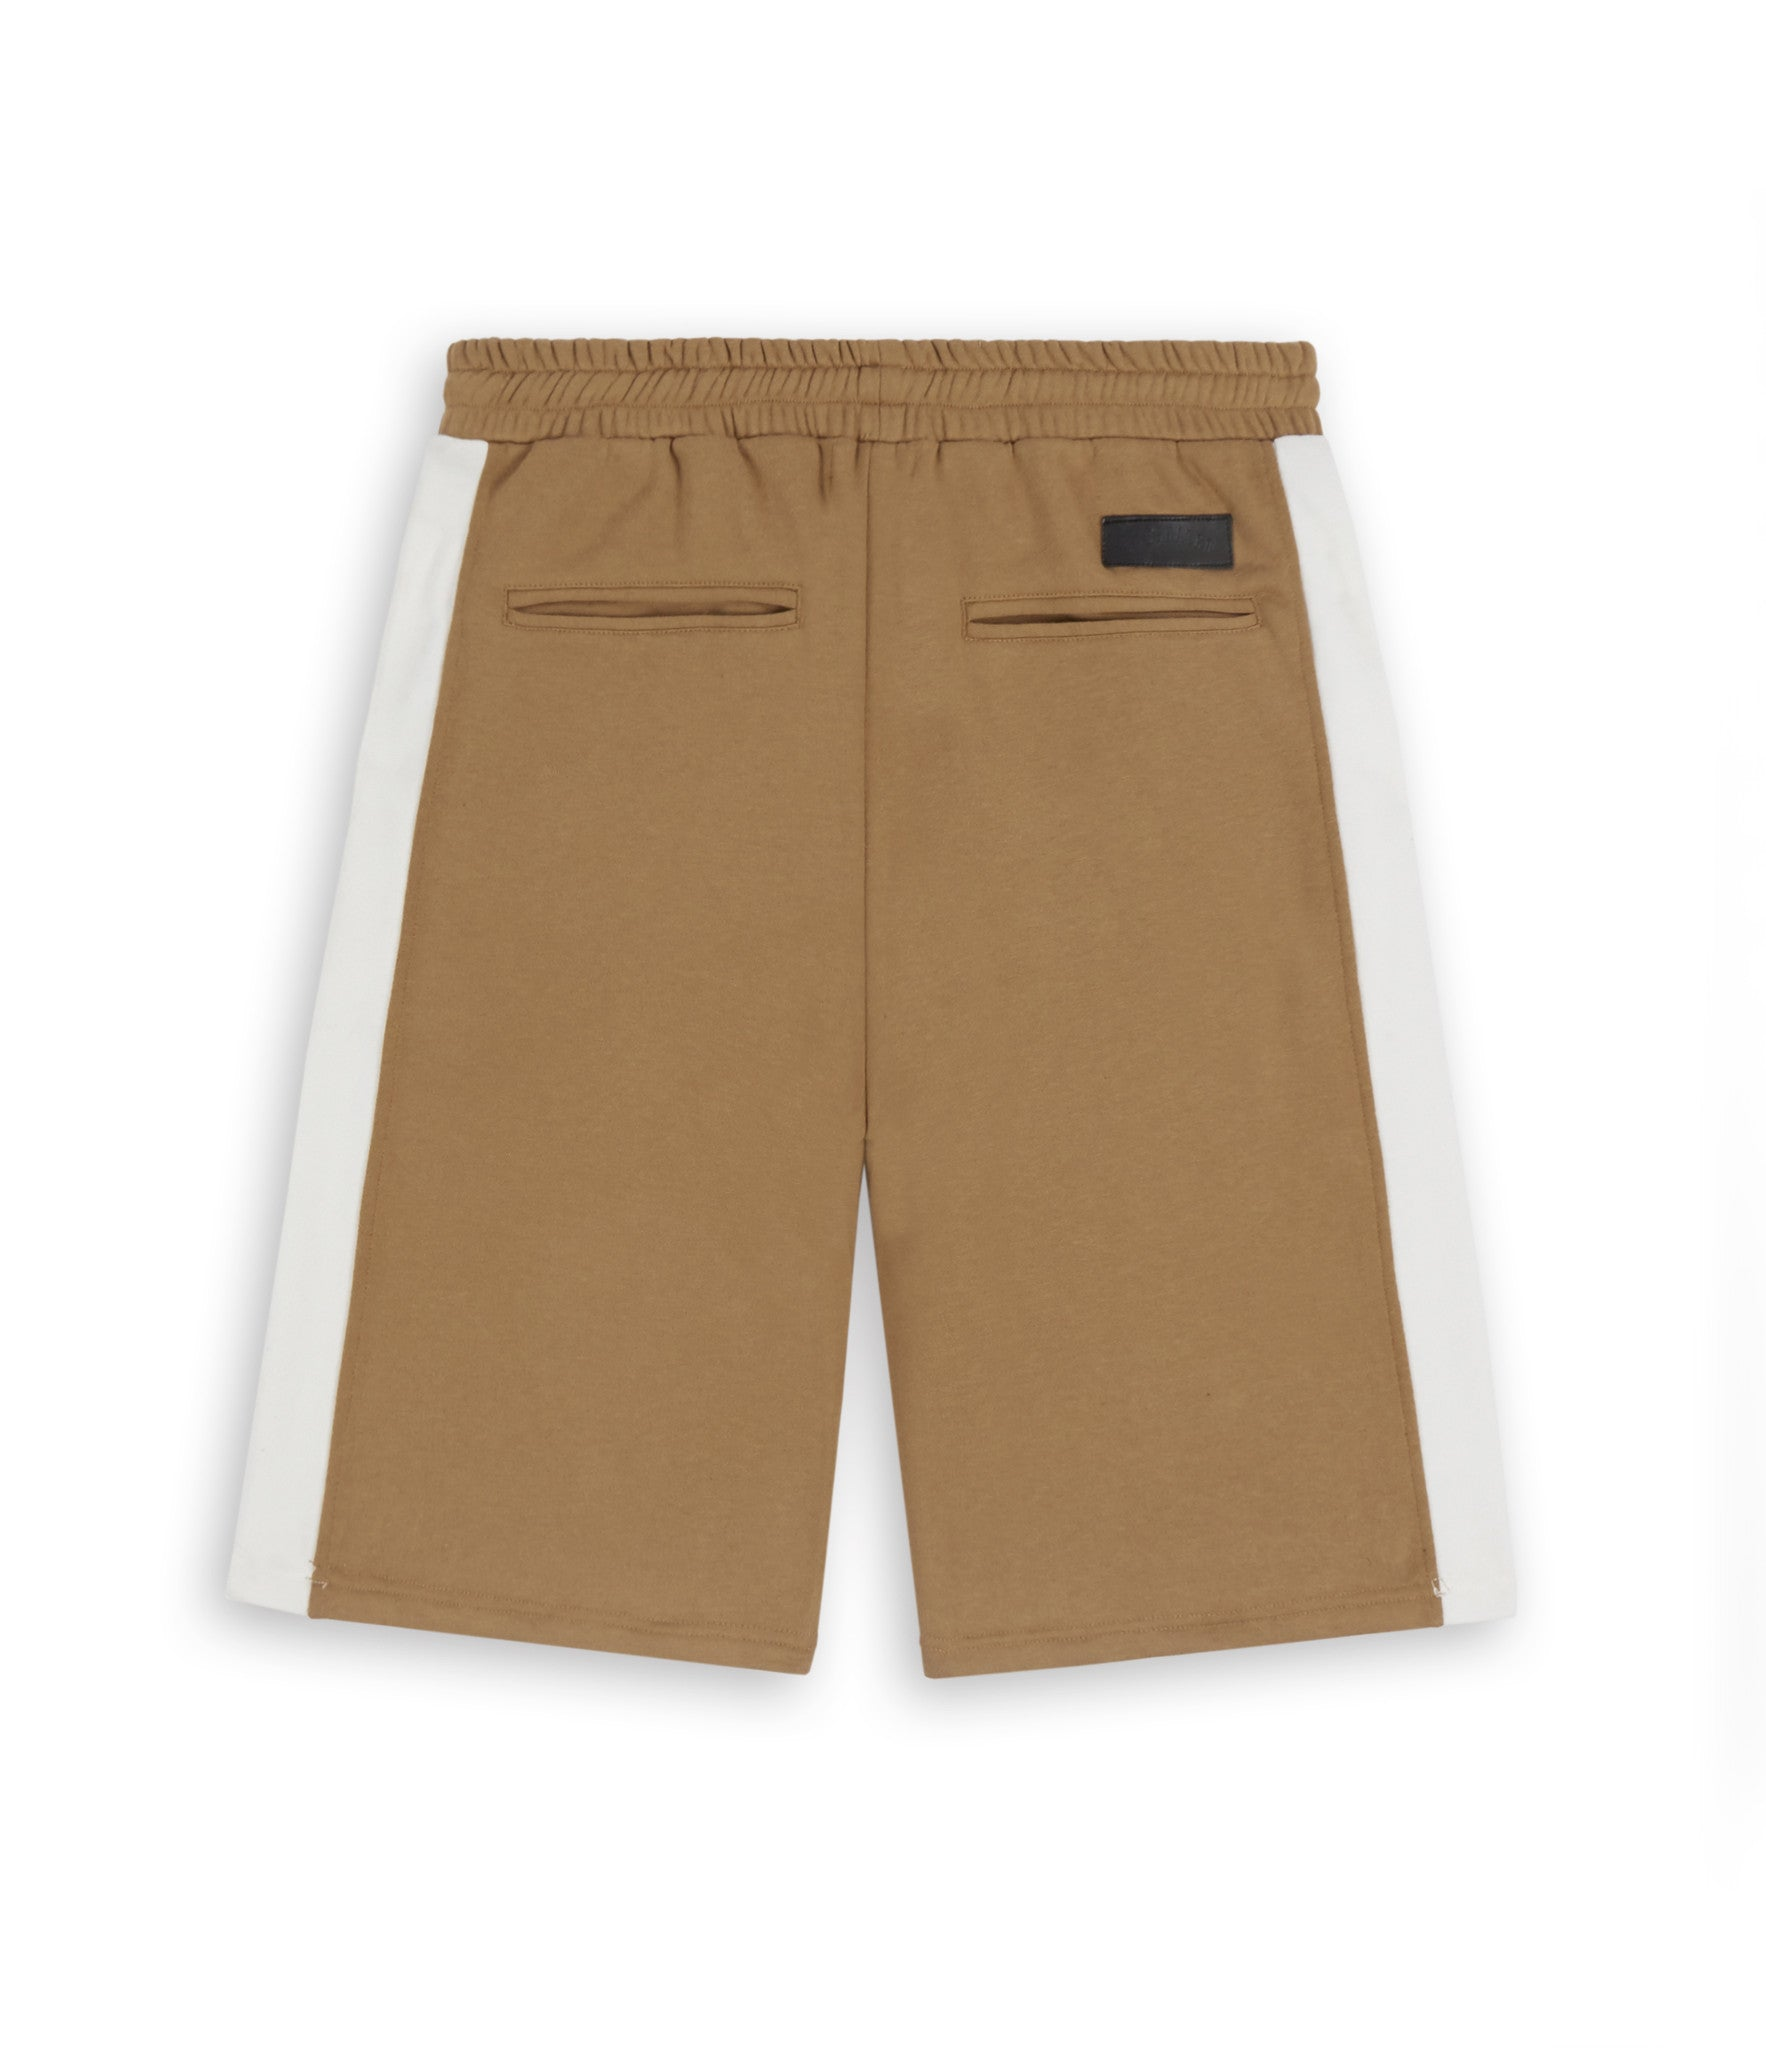 SR214 Stripe Shorts - Tan - underated london - underatedco - 2